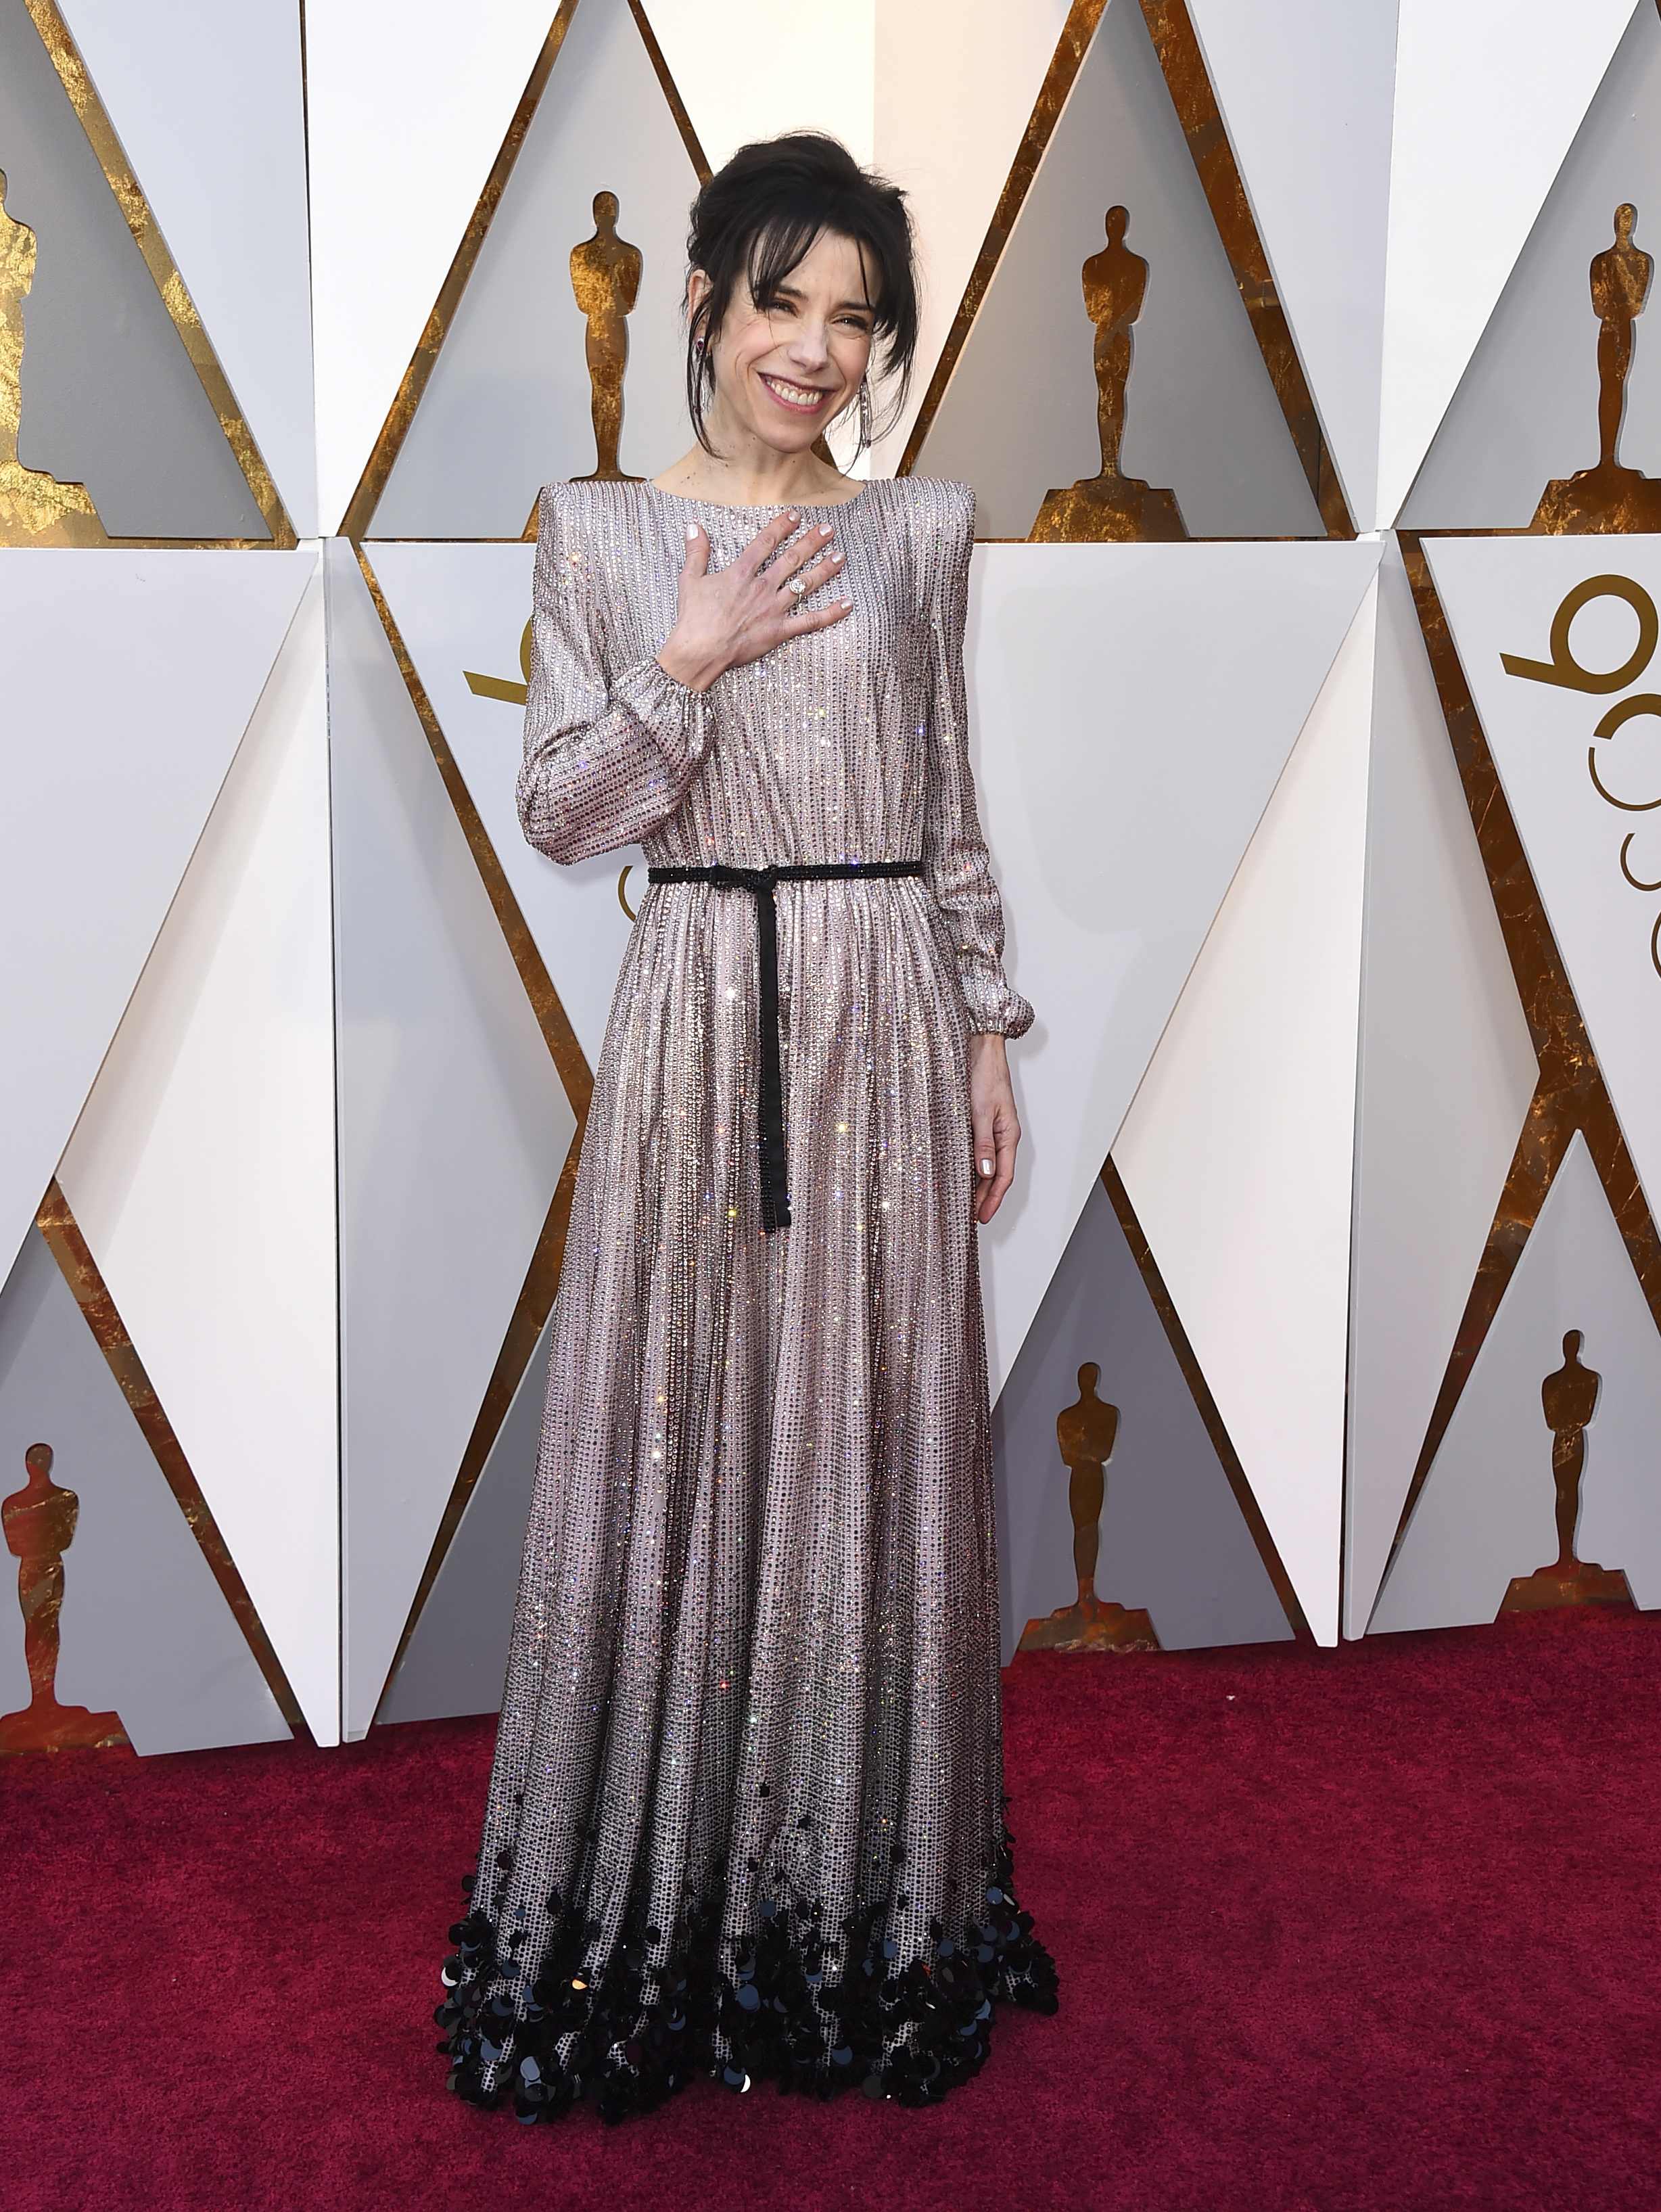 "<div class=""meta image-caption""><div class=""origin-logo origin-image none""><span>none</span></div><span class=""caption-text"">Sally Hawkins, nominated for Best Actress for ''The Shape of Water,'' arrives at the Oscars on Sunday, March 4, 2018, at the Dolby Theatre in Los Angeles. (Jordan Strauss/Invision/AP)</span></div>"